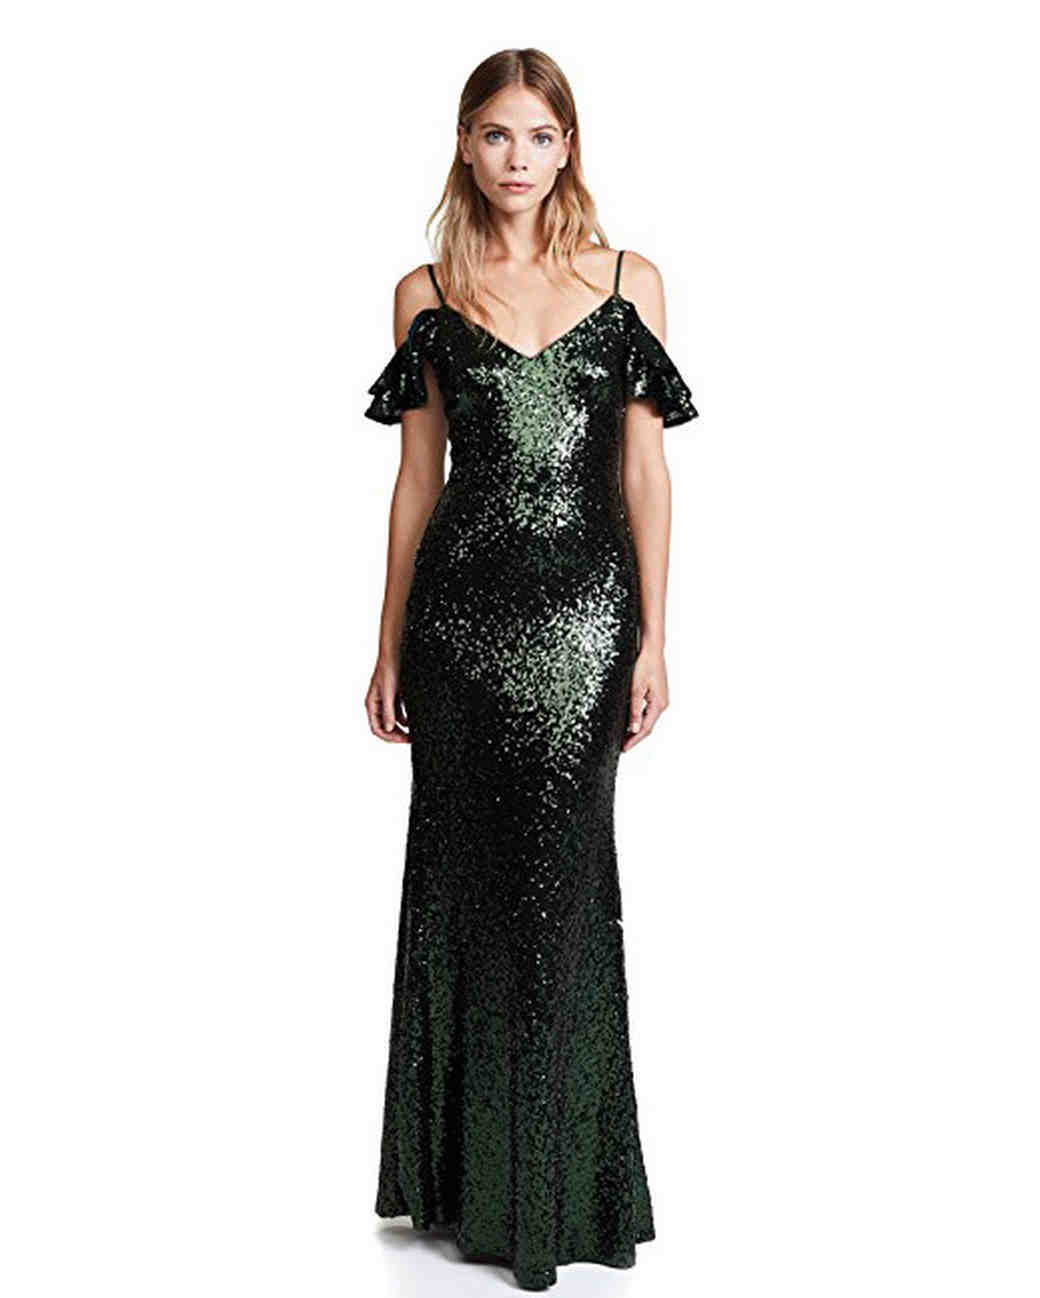 For Fall Wedding Cocktail Dresses for Bride